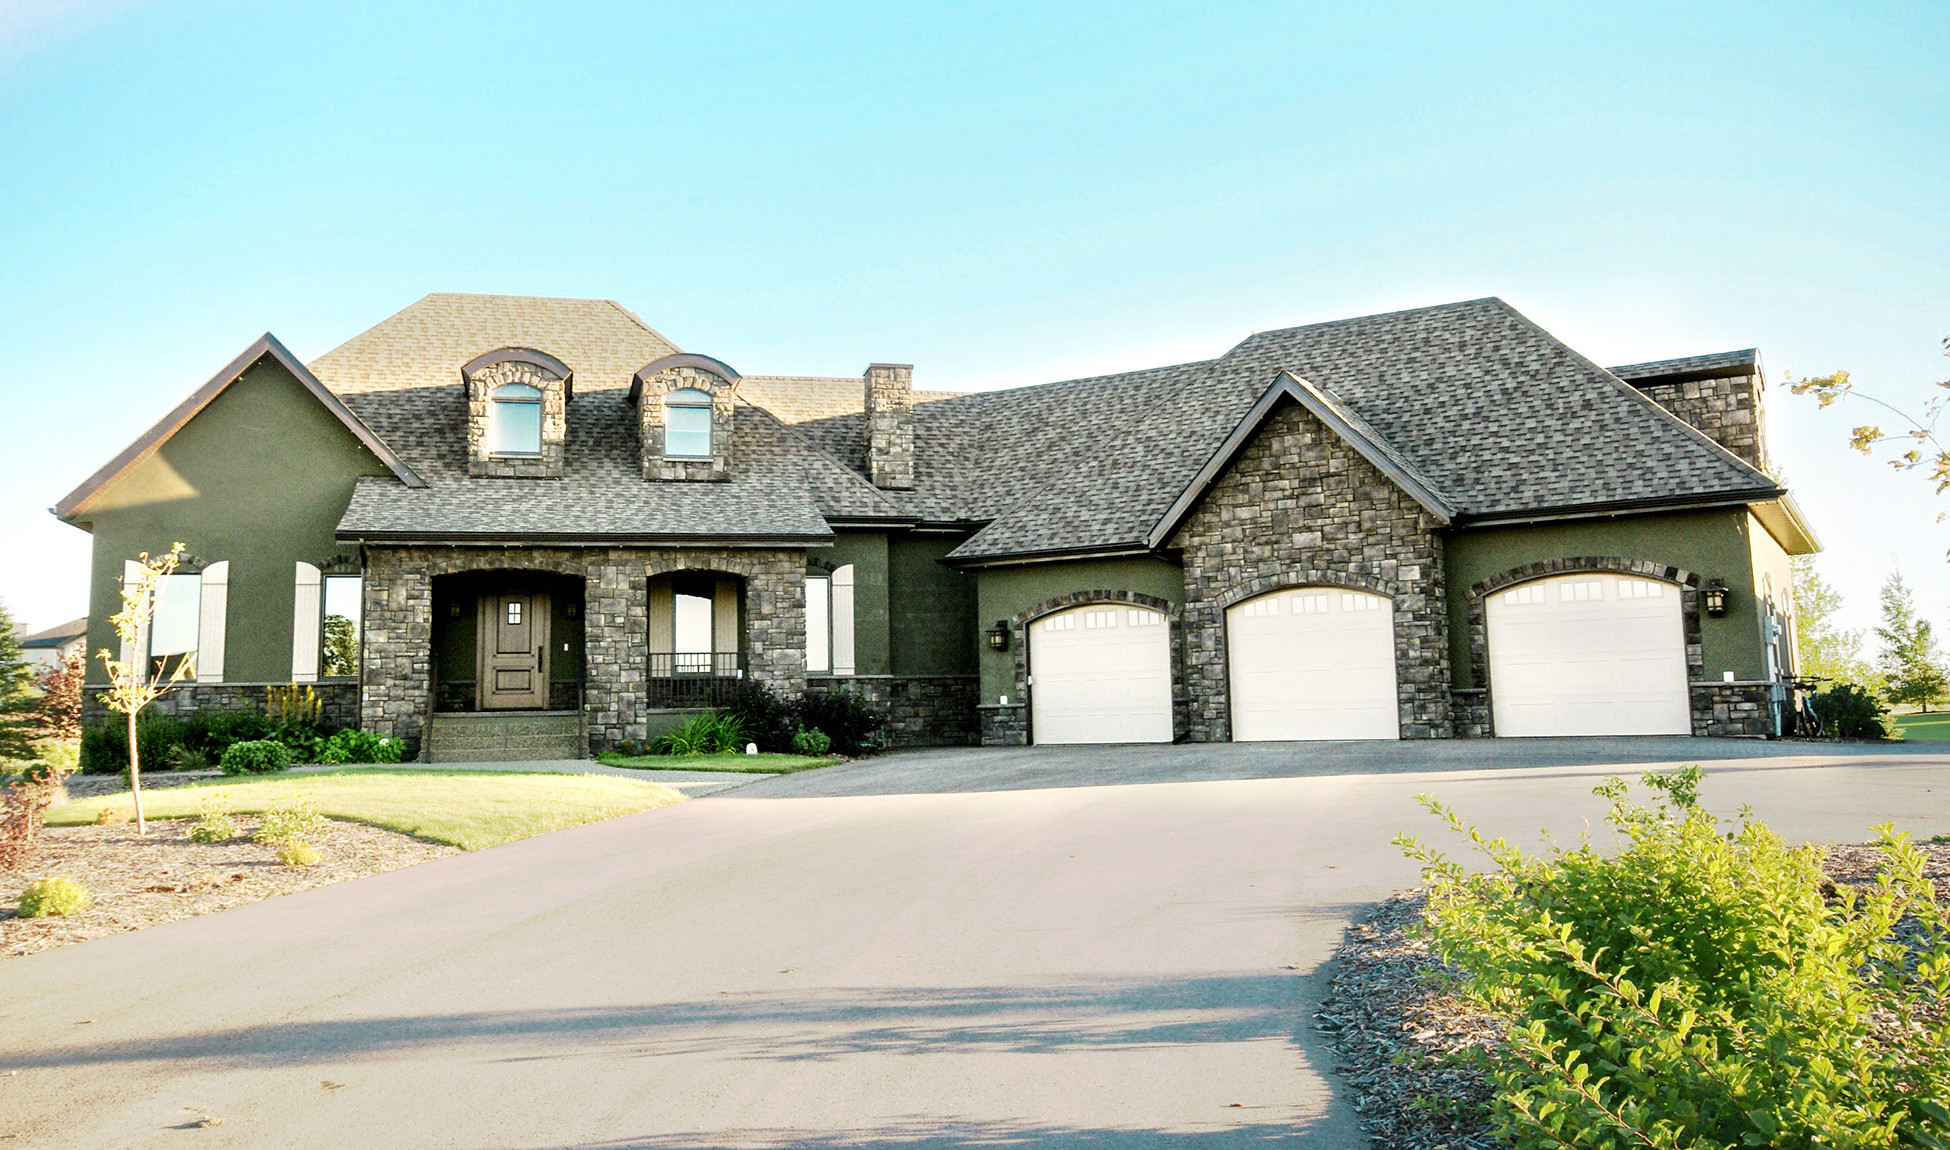 Vista meadows one country home bezooyen contracting for Custom country homes